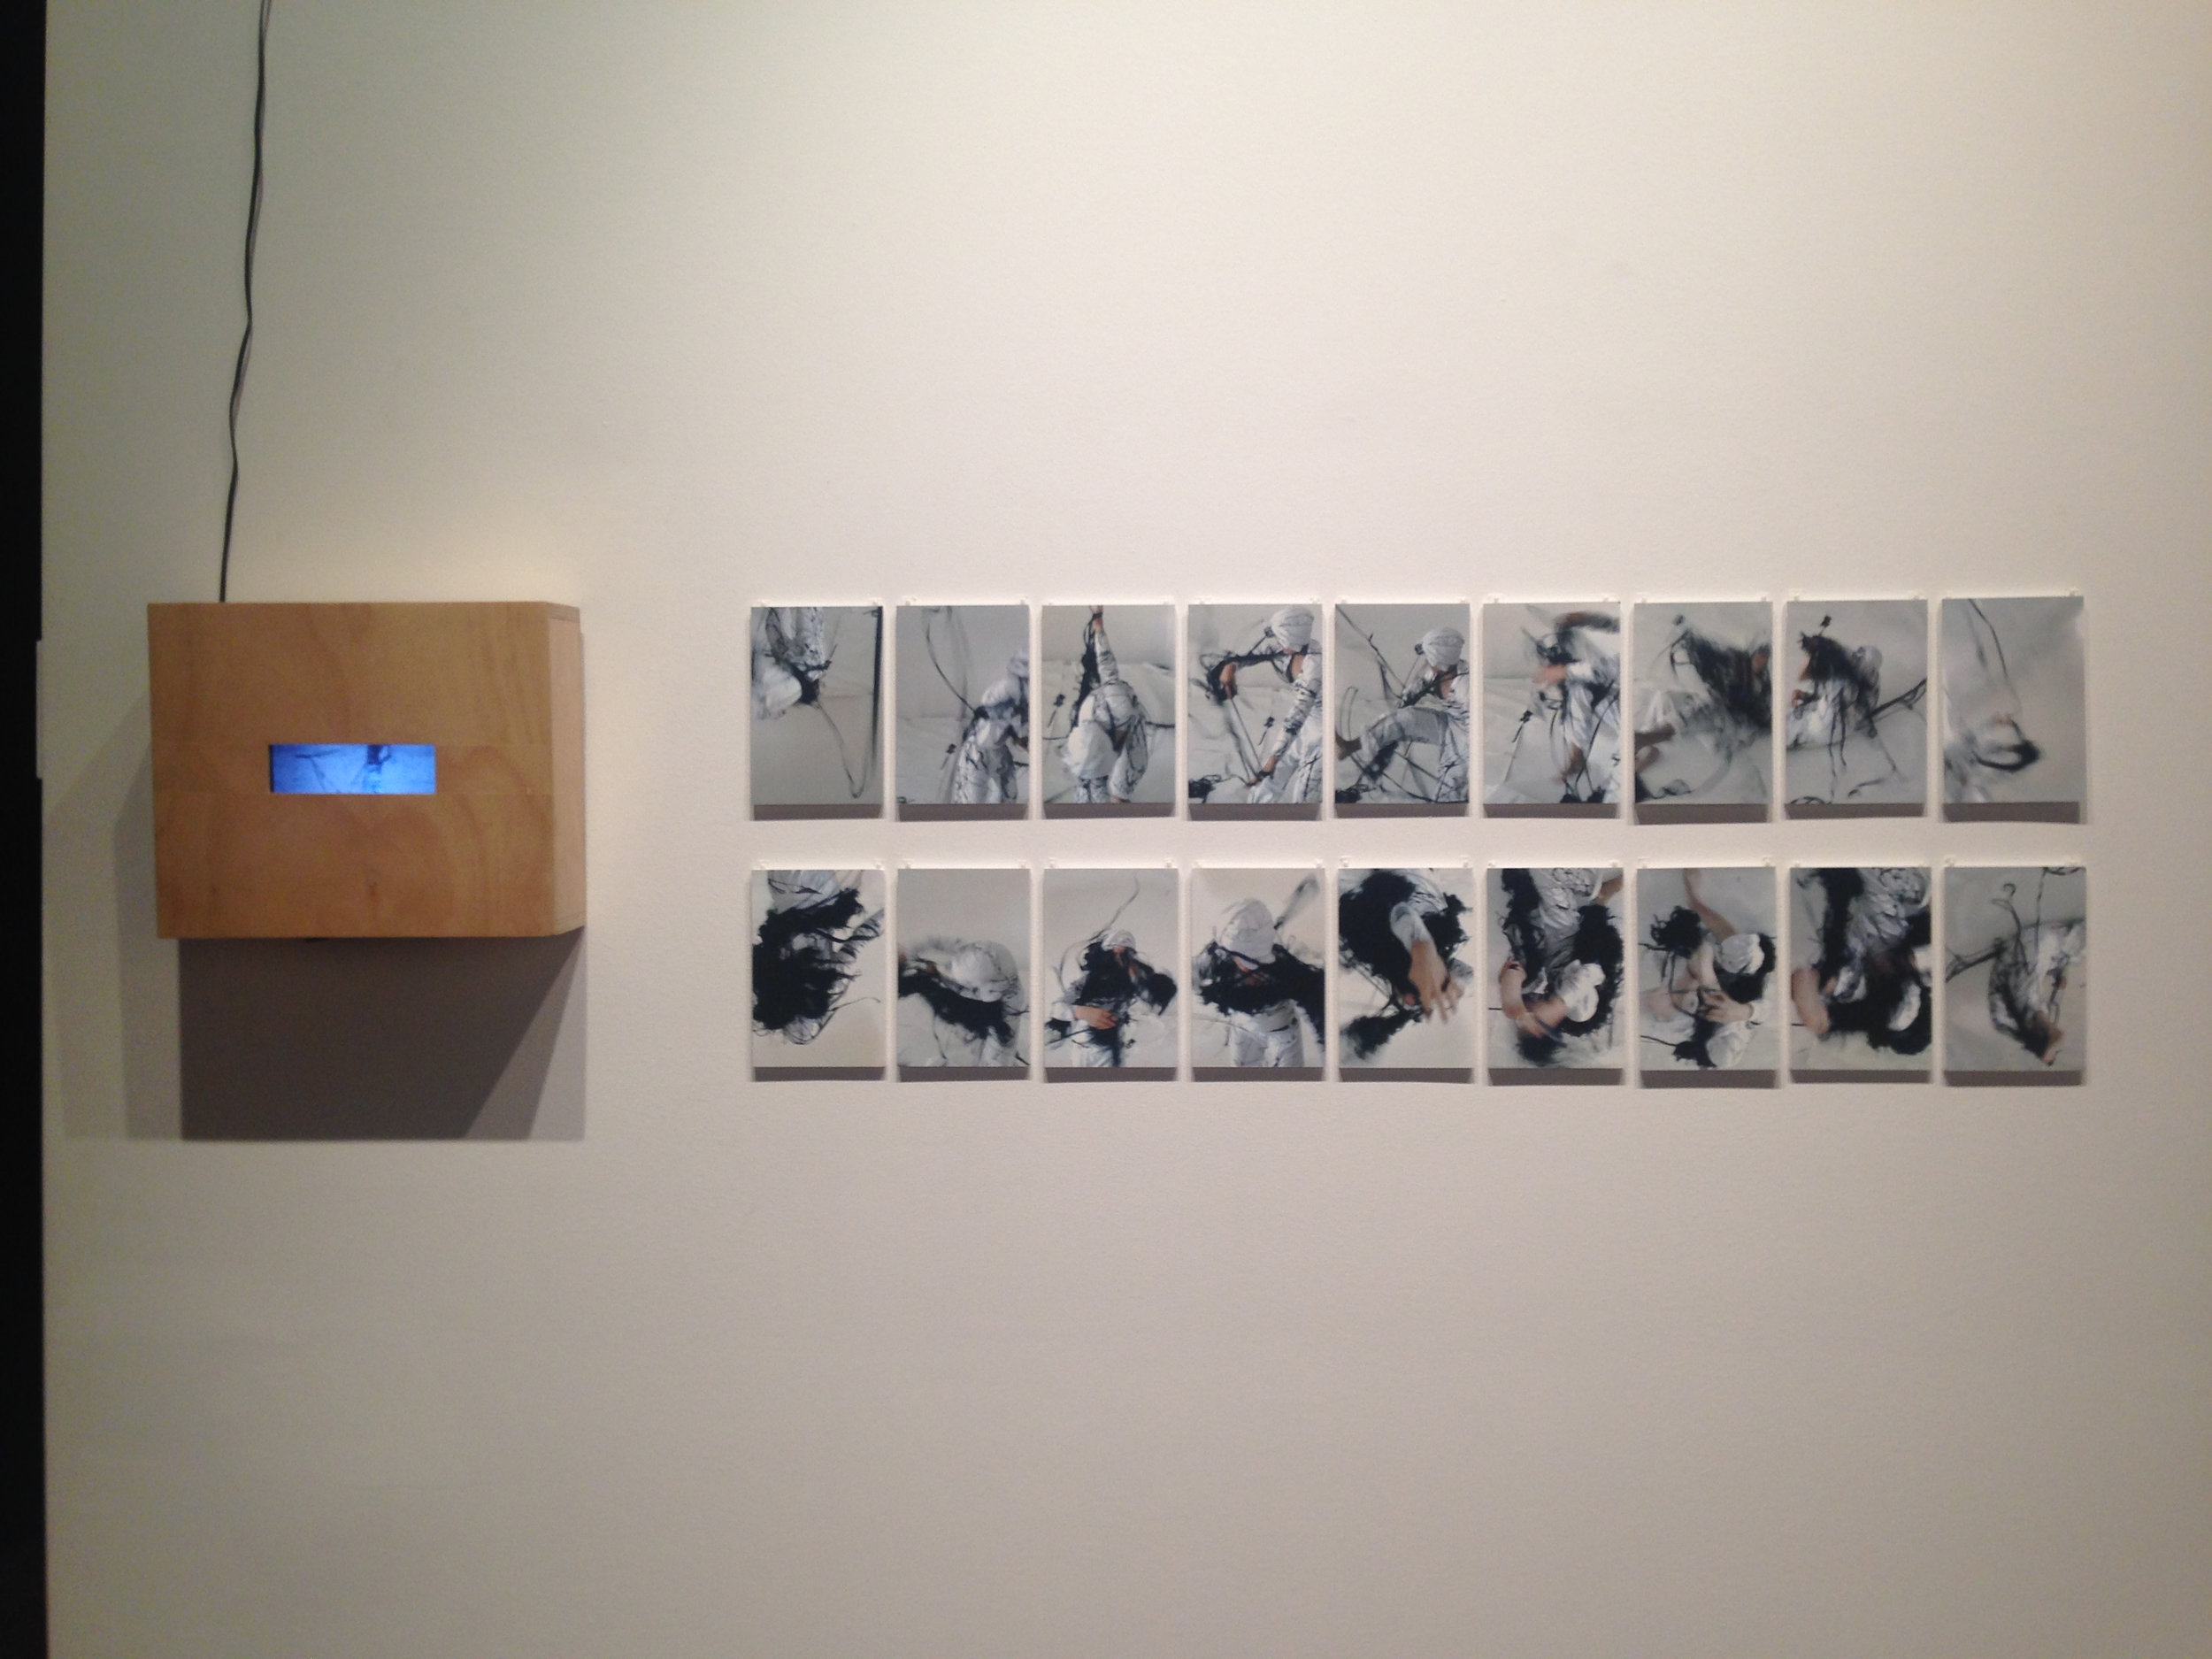 Nicci Haynes  Body language 1, 2,  (installation view)2013, Photo–collage and drypoint etching on paper x 18, ea. 17 cm x 22 cm.